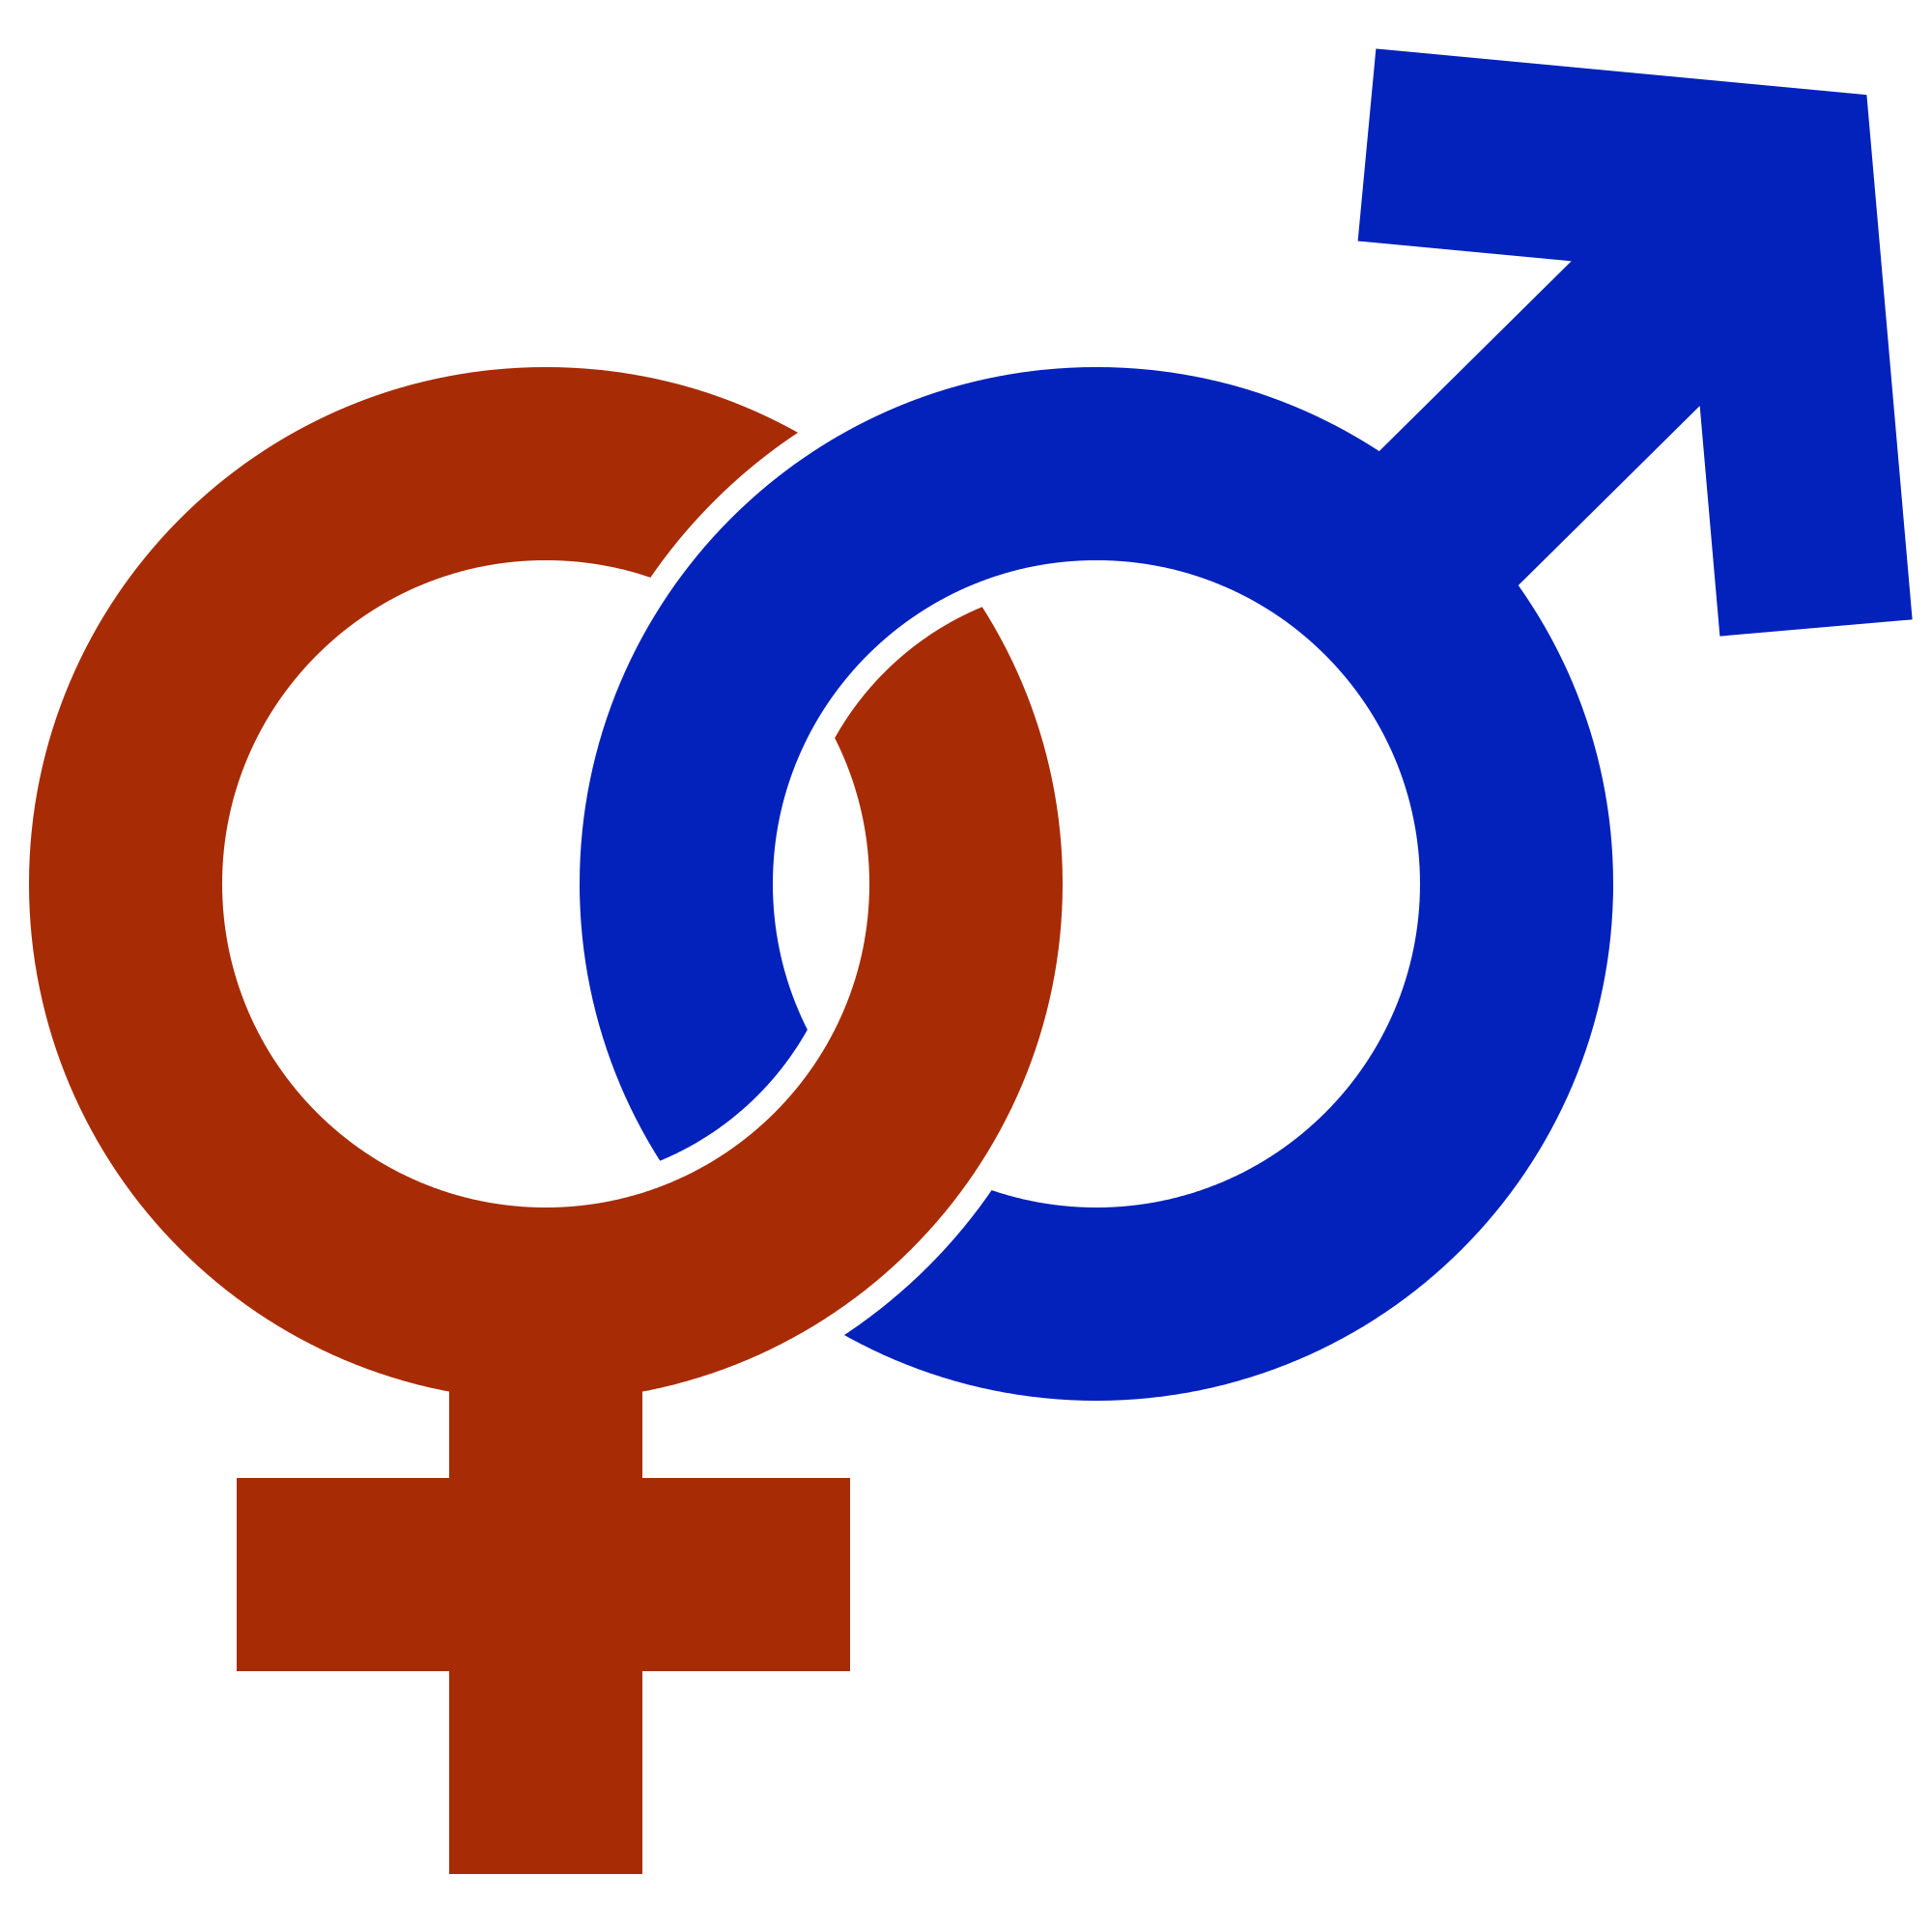 Gender wikipedia. Clipart definition etymology